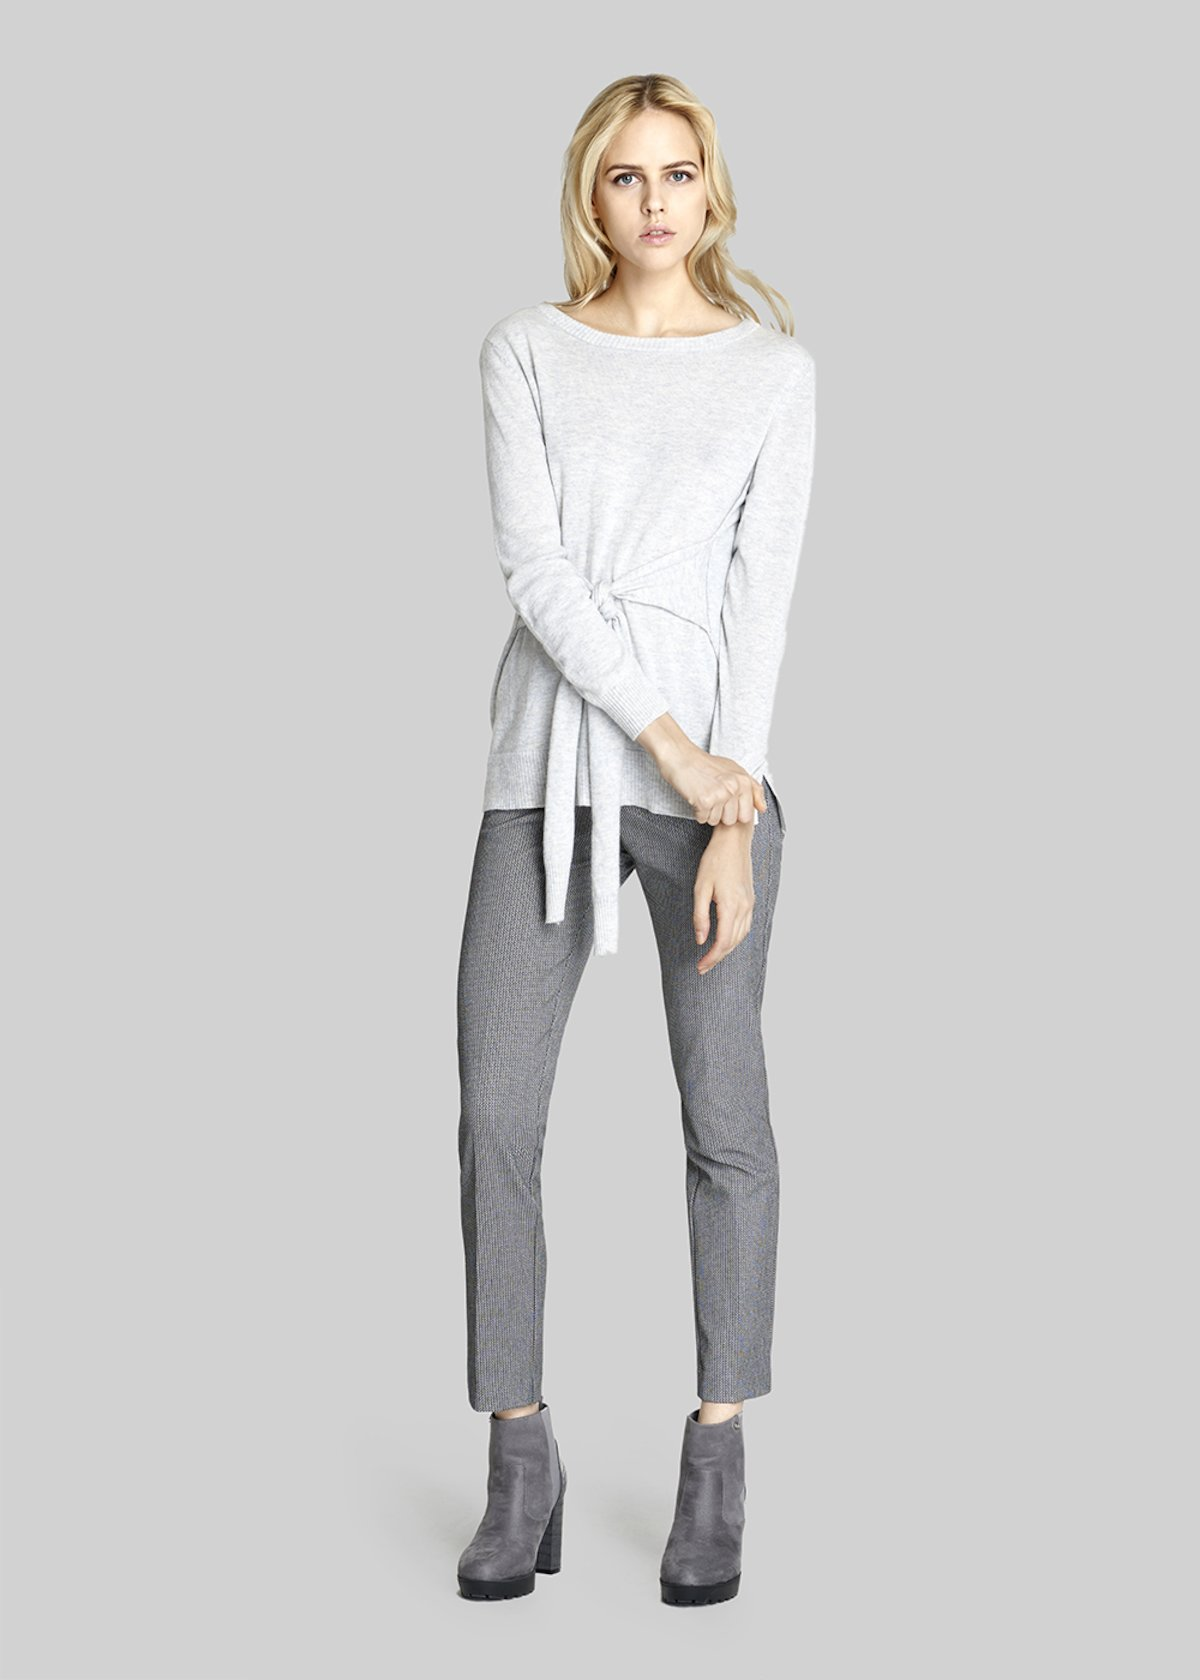 Maelle blouse with boat neck and belt - Light Grey Melange